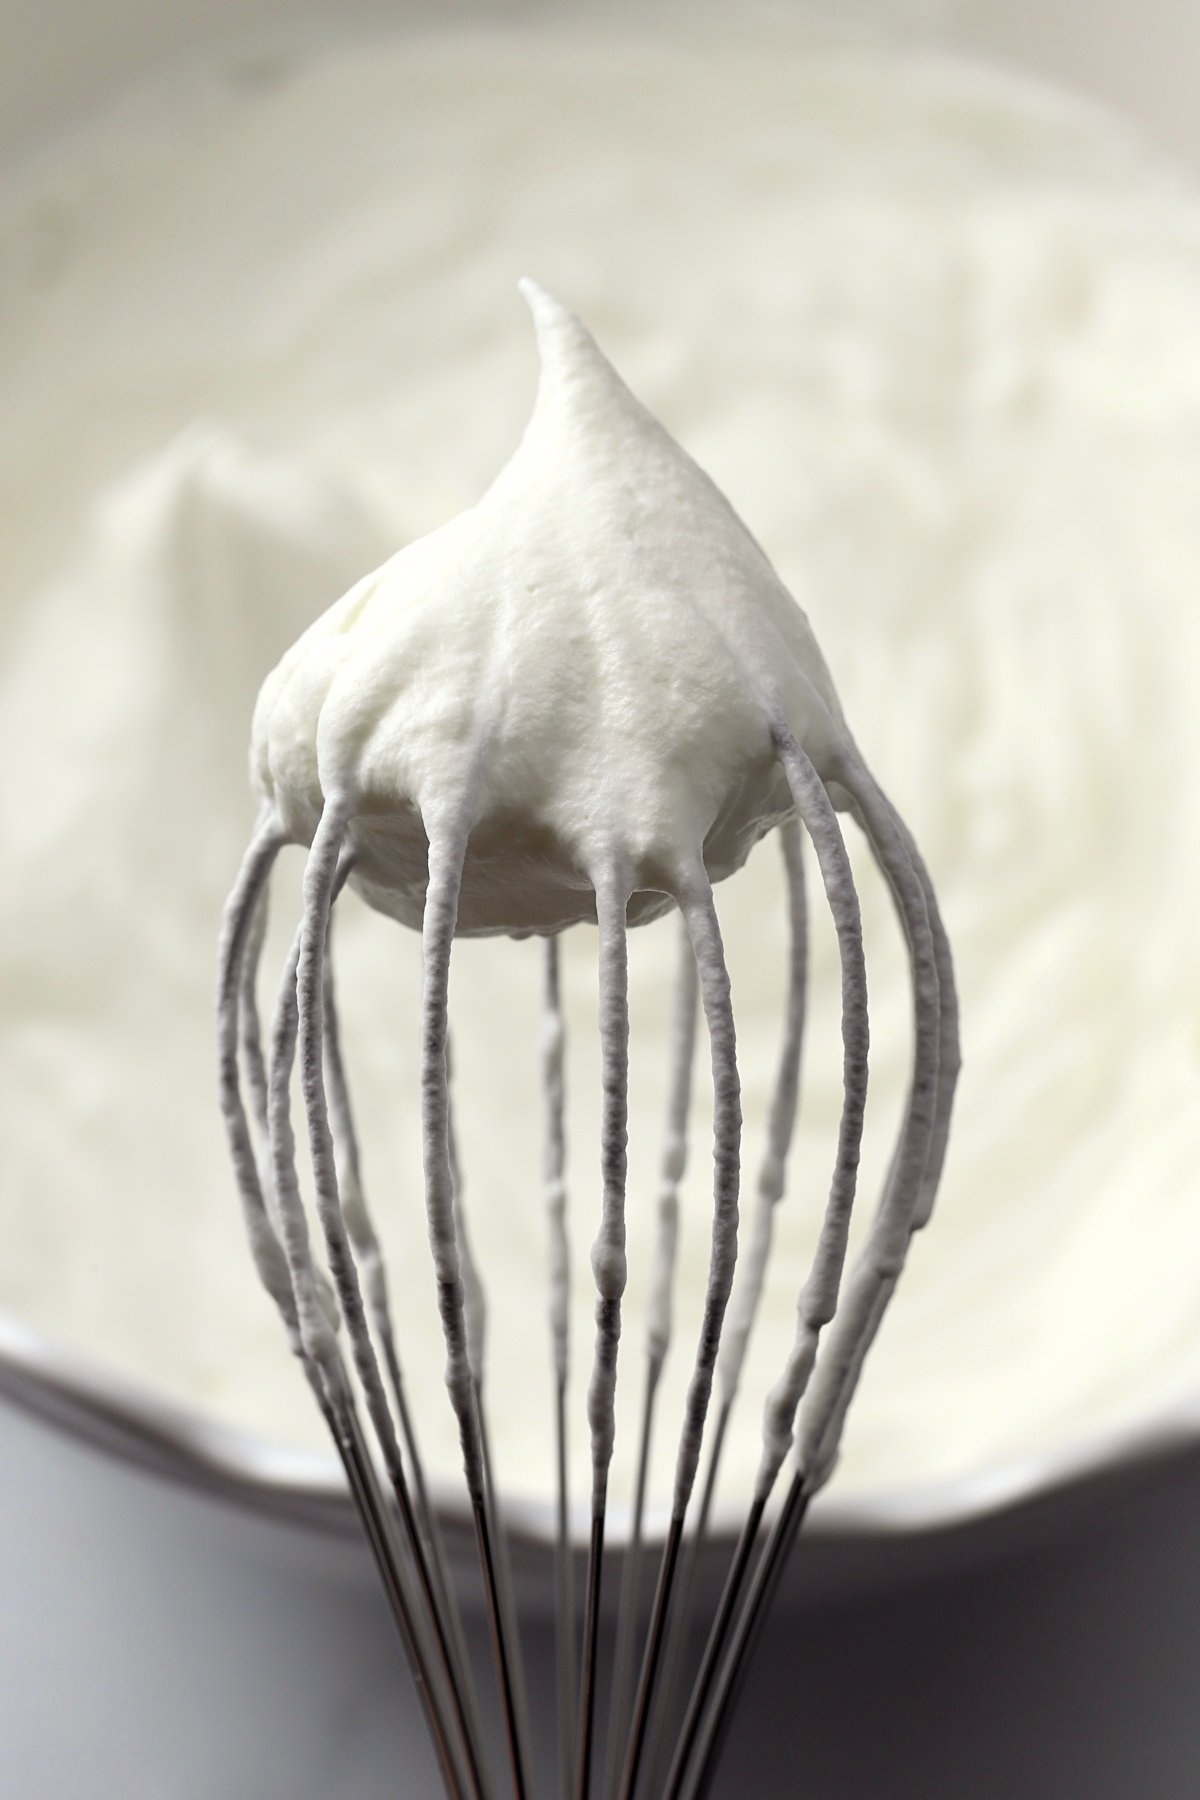 A whisk with a dollop of whipped cream on top.